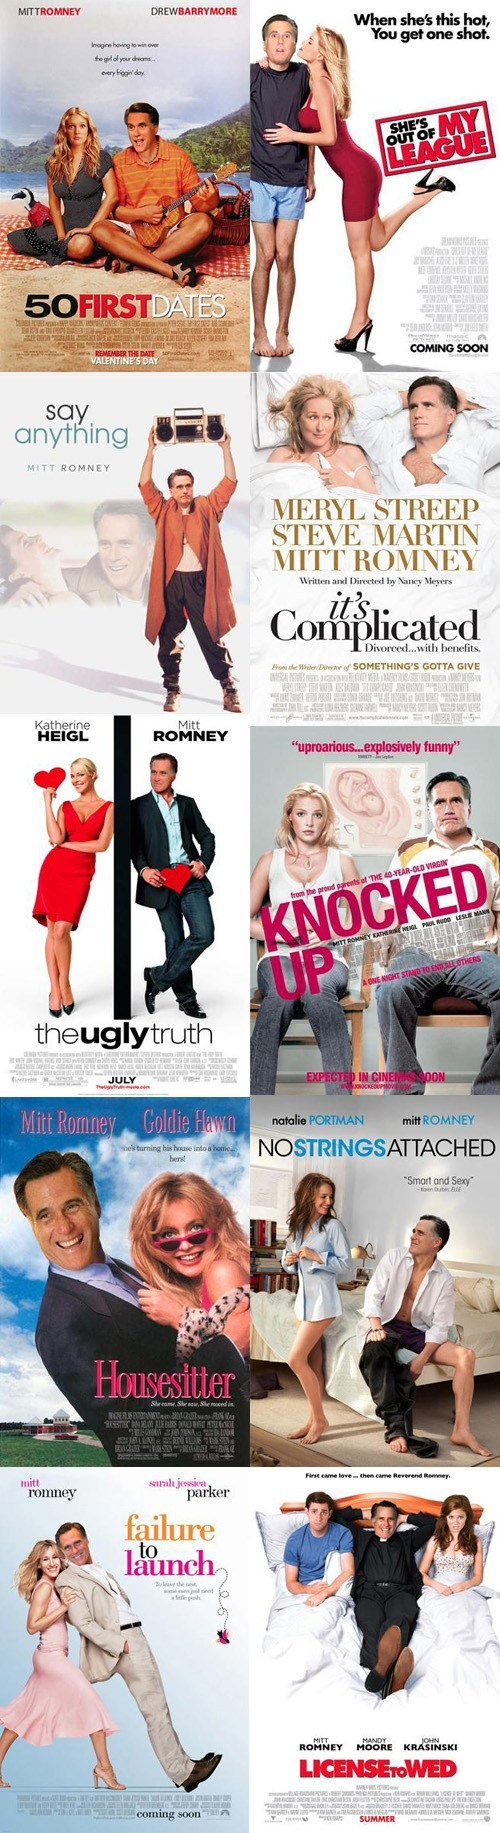 Mitt Romney,movies,posters,romantic comedies